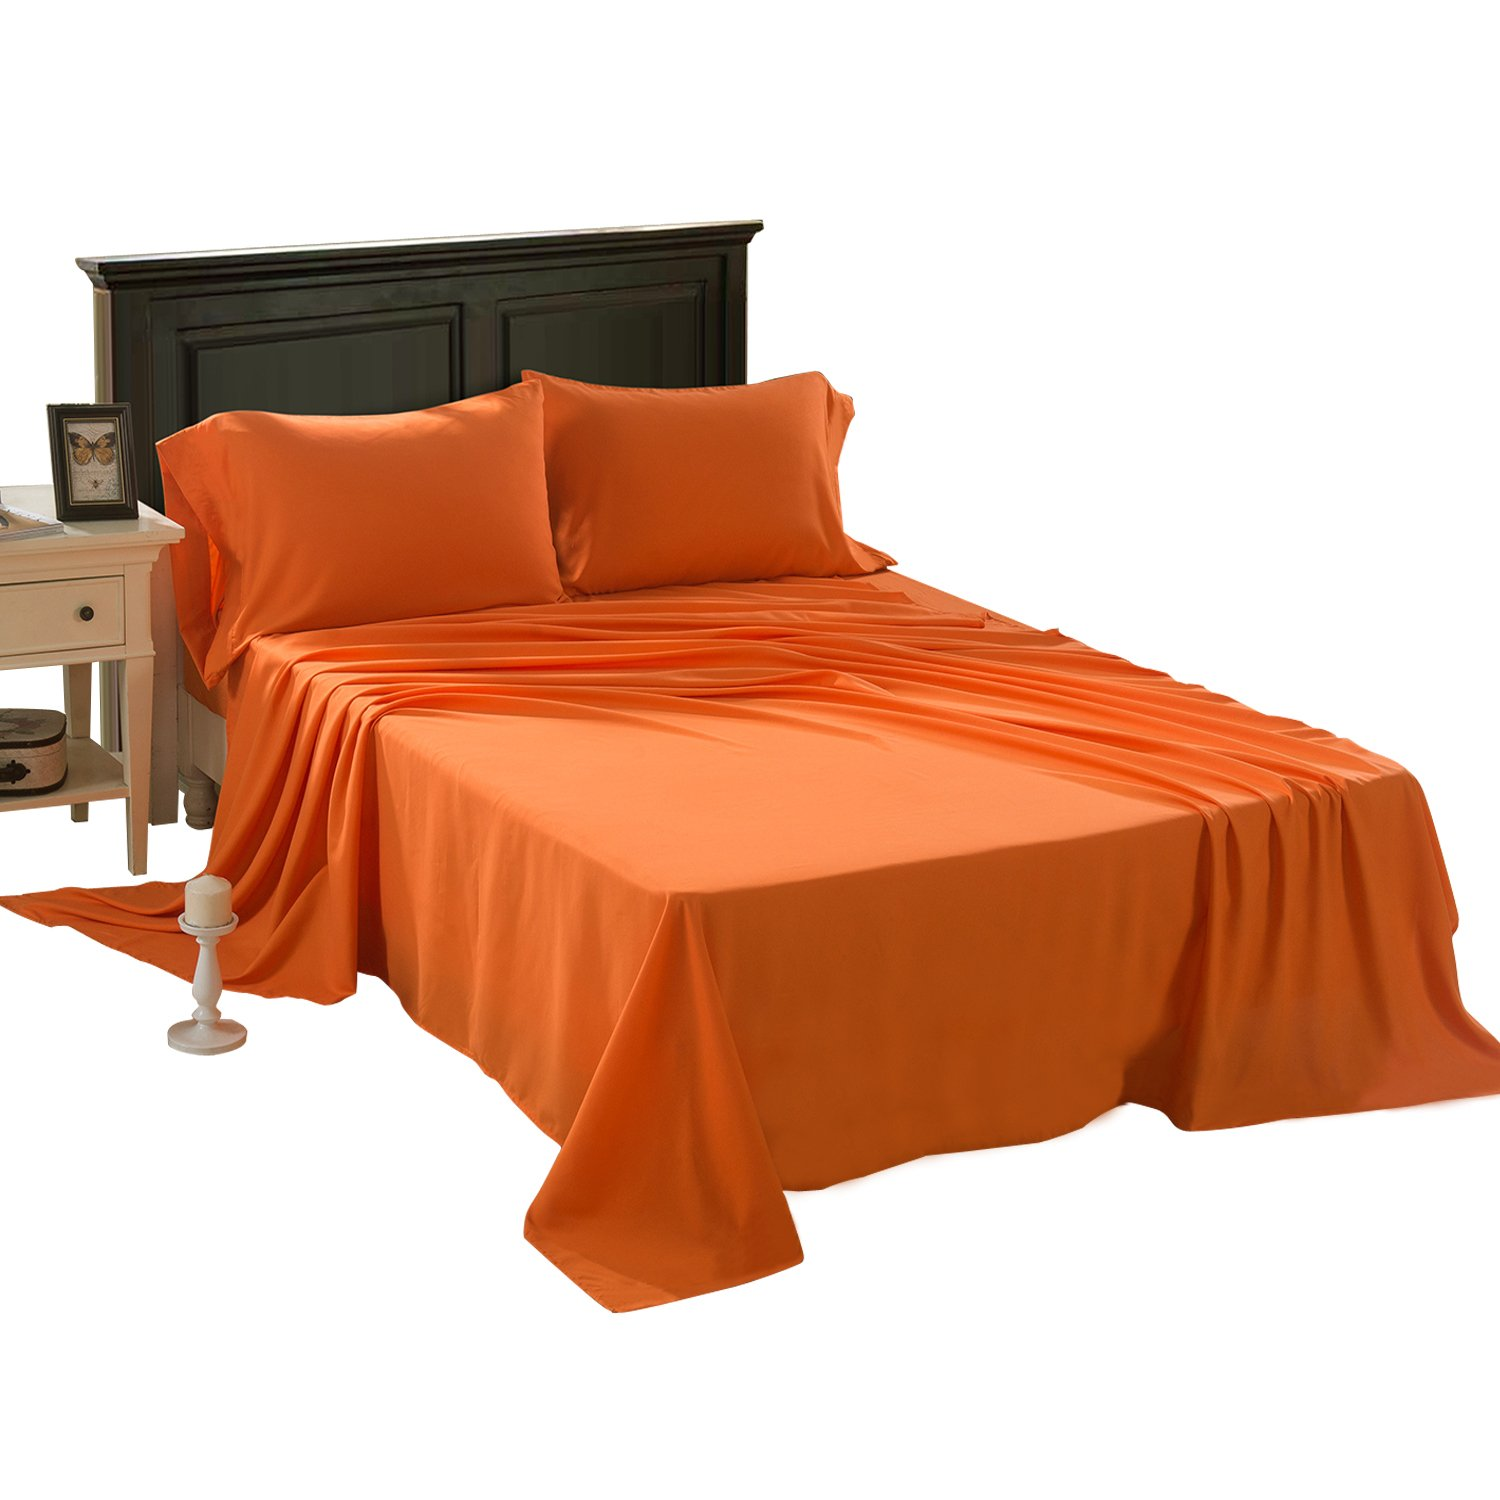 HollyHOME 1500 Soft Hypoallergenic Brushed Microfiber Bed Sheet Set, 4 Pieces Queen Size Sheets, Orange